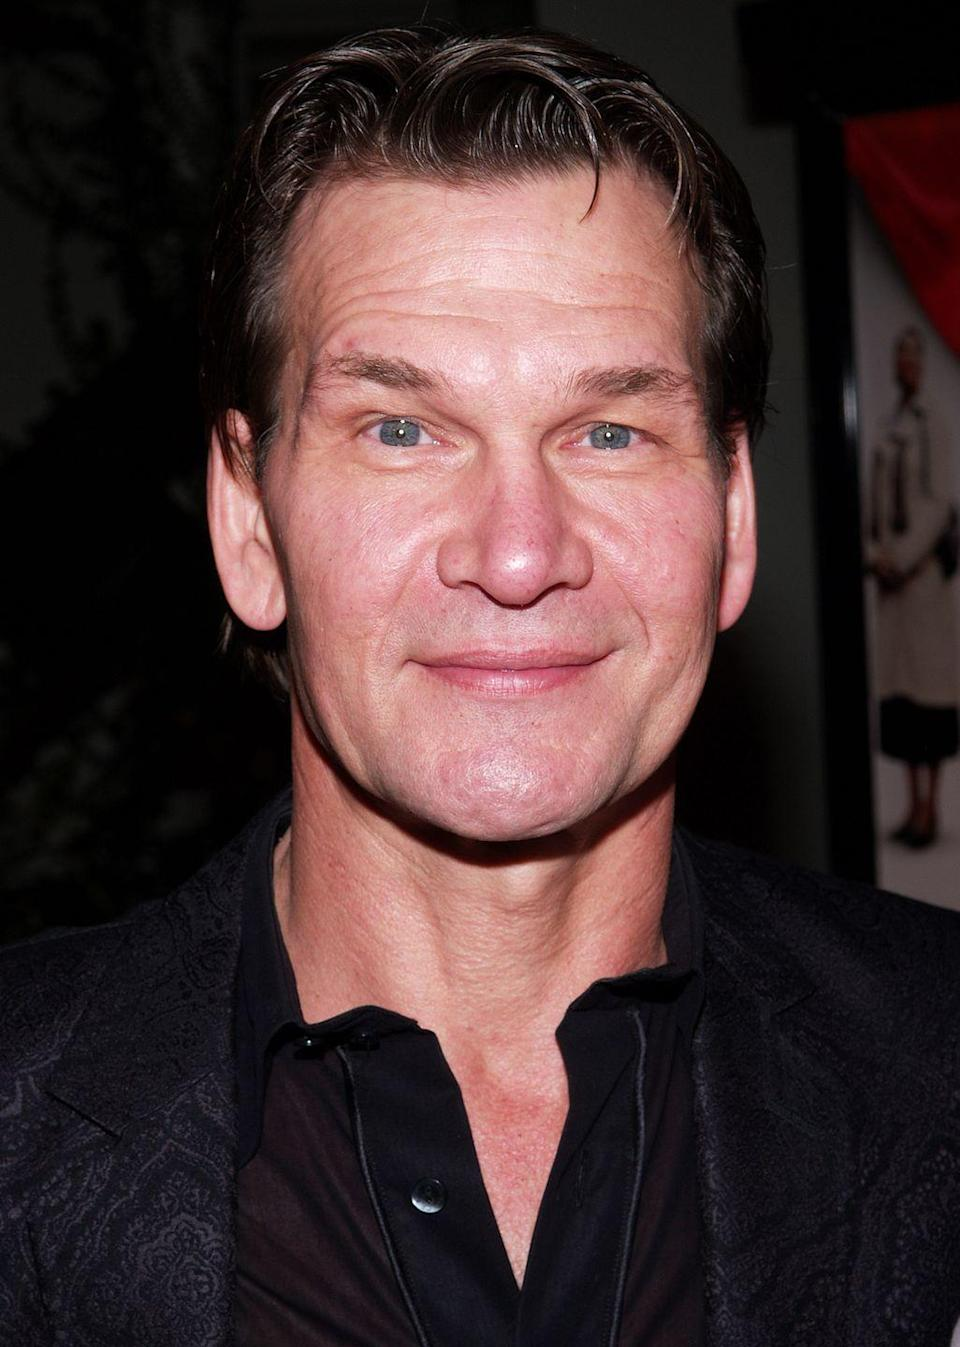 """<p>Though the actor sadly died after being diagnosed with pancreatic cancer, people have said they remember him <em>recovering</em>. </p><p><strong>RELATED:</strong> <a href=""""https://www.goodhousekeeping.com/life/entertainment/a34988/dirty-dancing-trivia/"""" rel=""""nofollow noopener"""" target=""""_blank"""" data-ylk=""""slk:11 Things You Didn't Know About &quot;Dirty Dancing&quot;"""" class=""""link rapid-noclick-resp"""">11 Things You Didn't Know About """"Dirty Dancing""""</a></p>"""